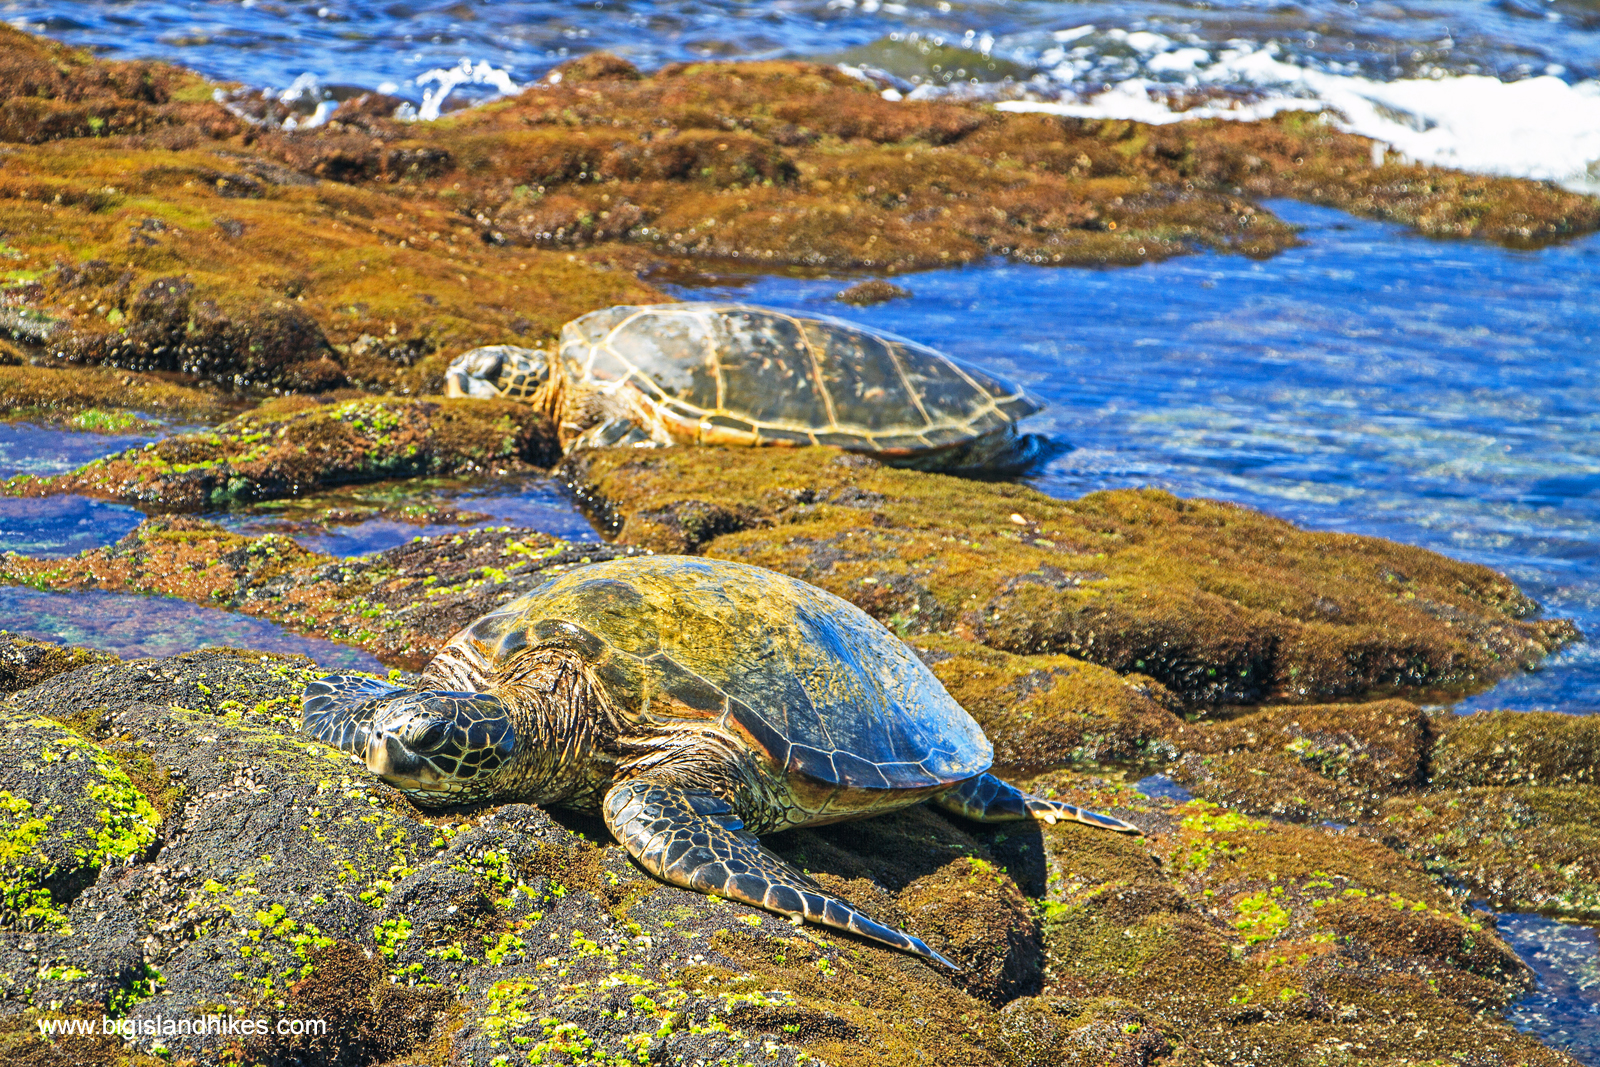 Honu - Green Sea Turtles